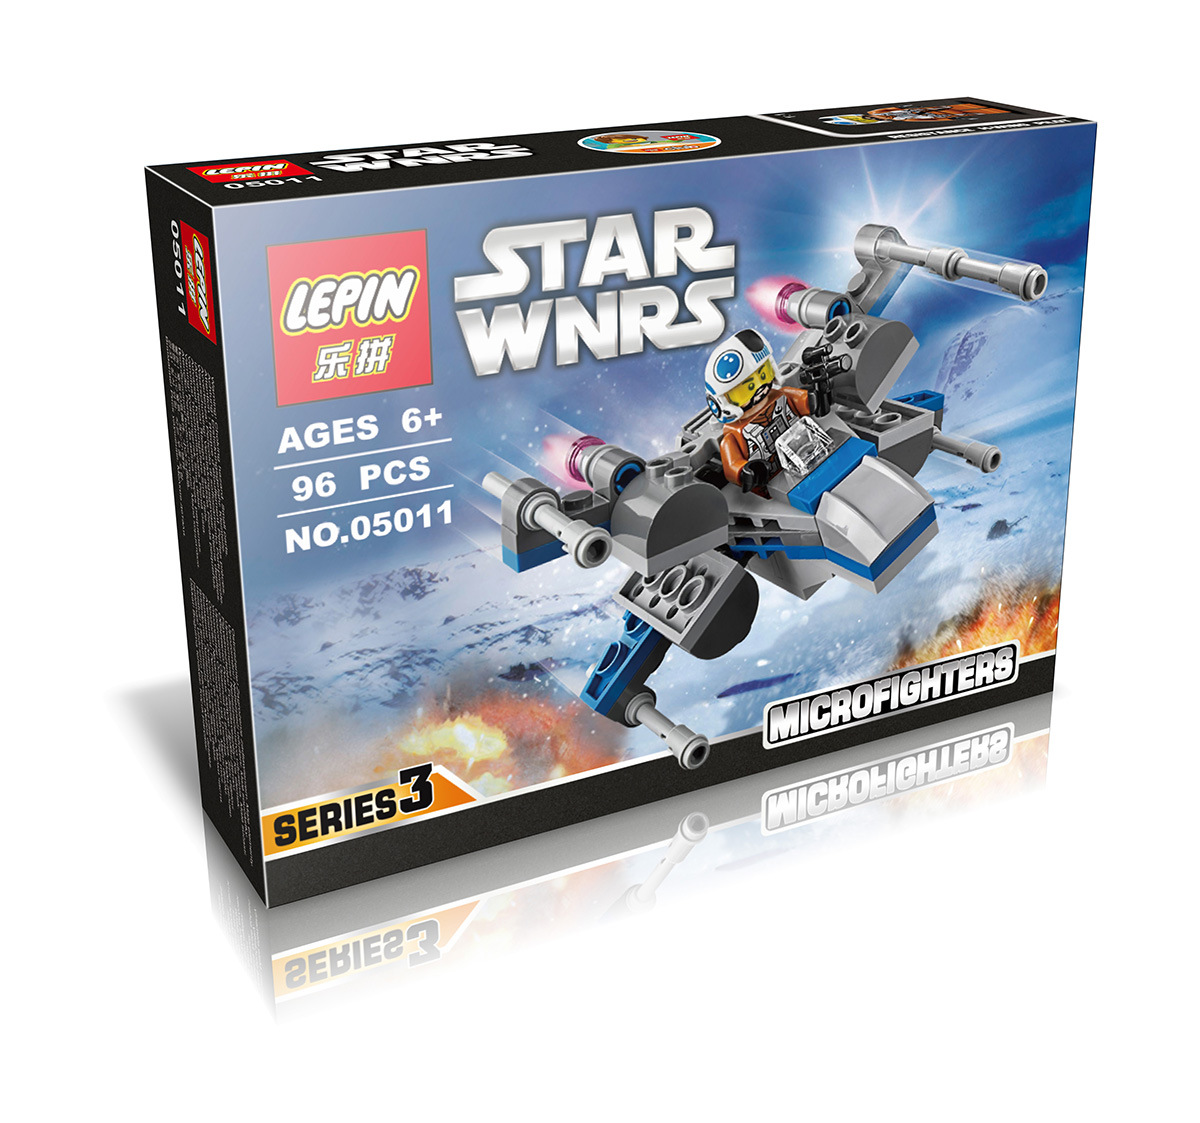 96+ PCS Building Bricks, LP 05011 Building Blocks 75125 Star Wars Resistance X-Wing Fighter.